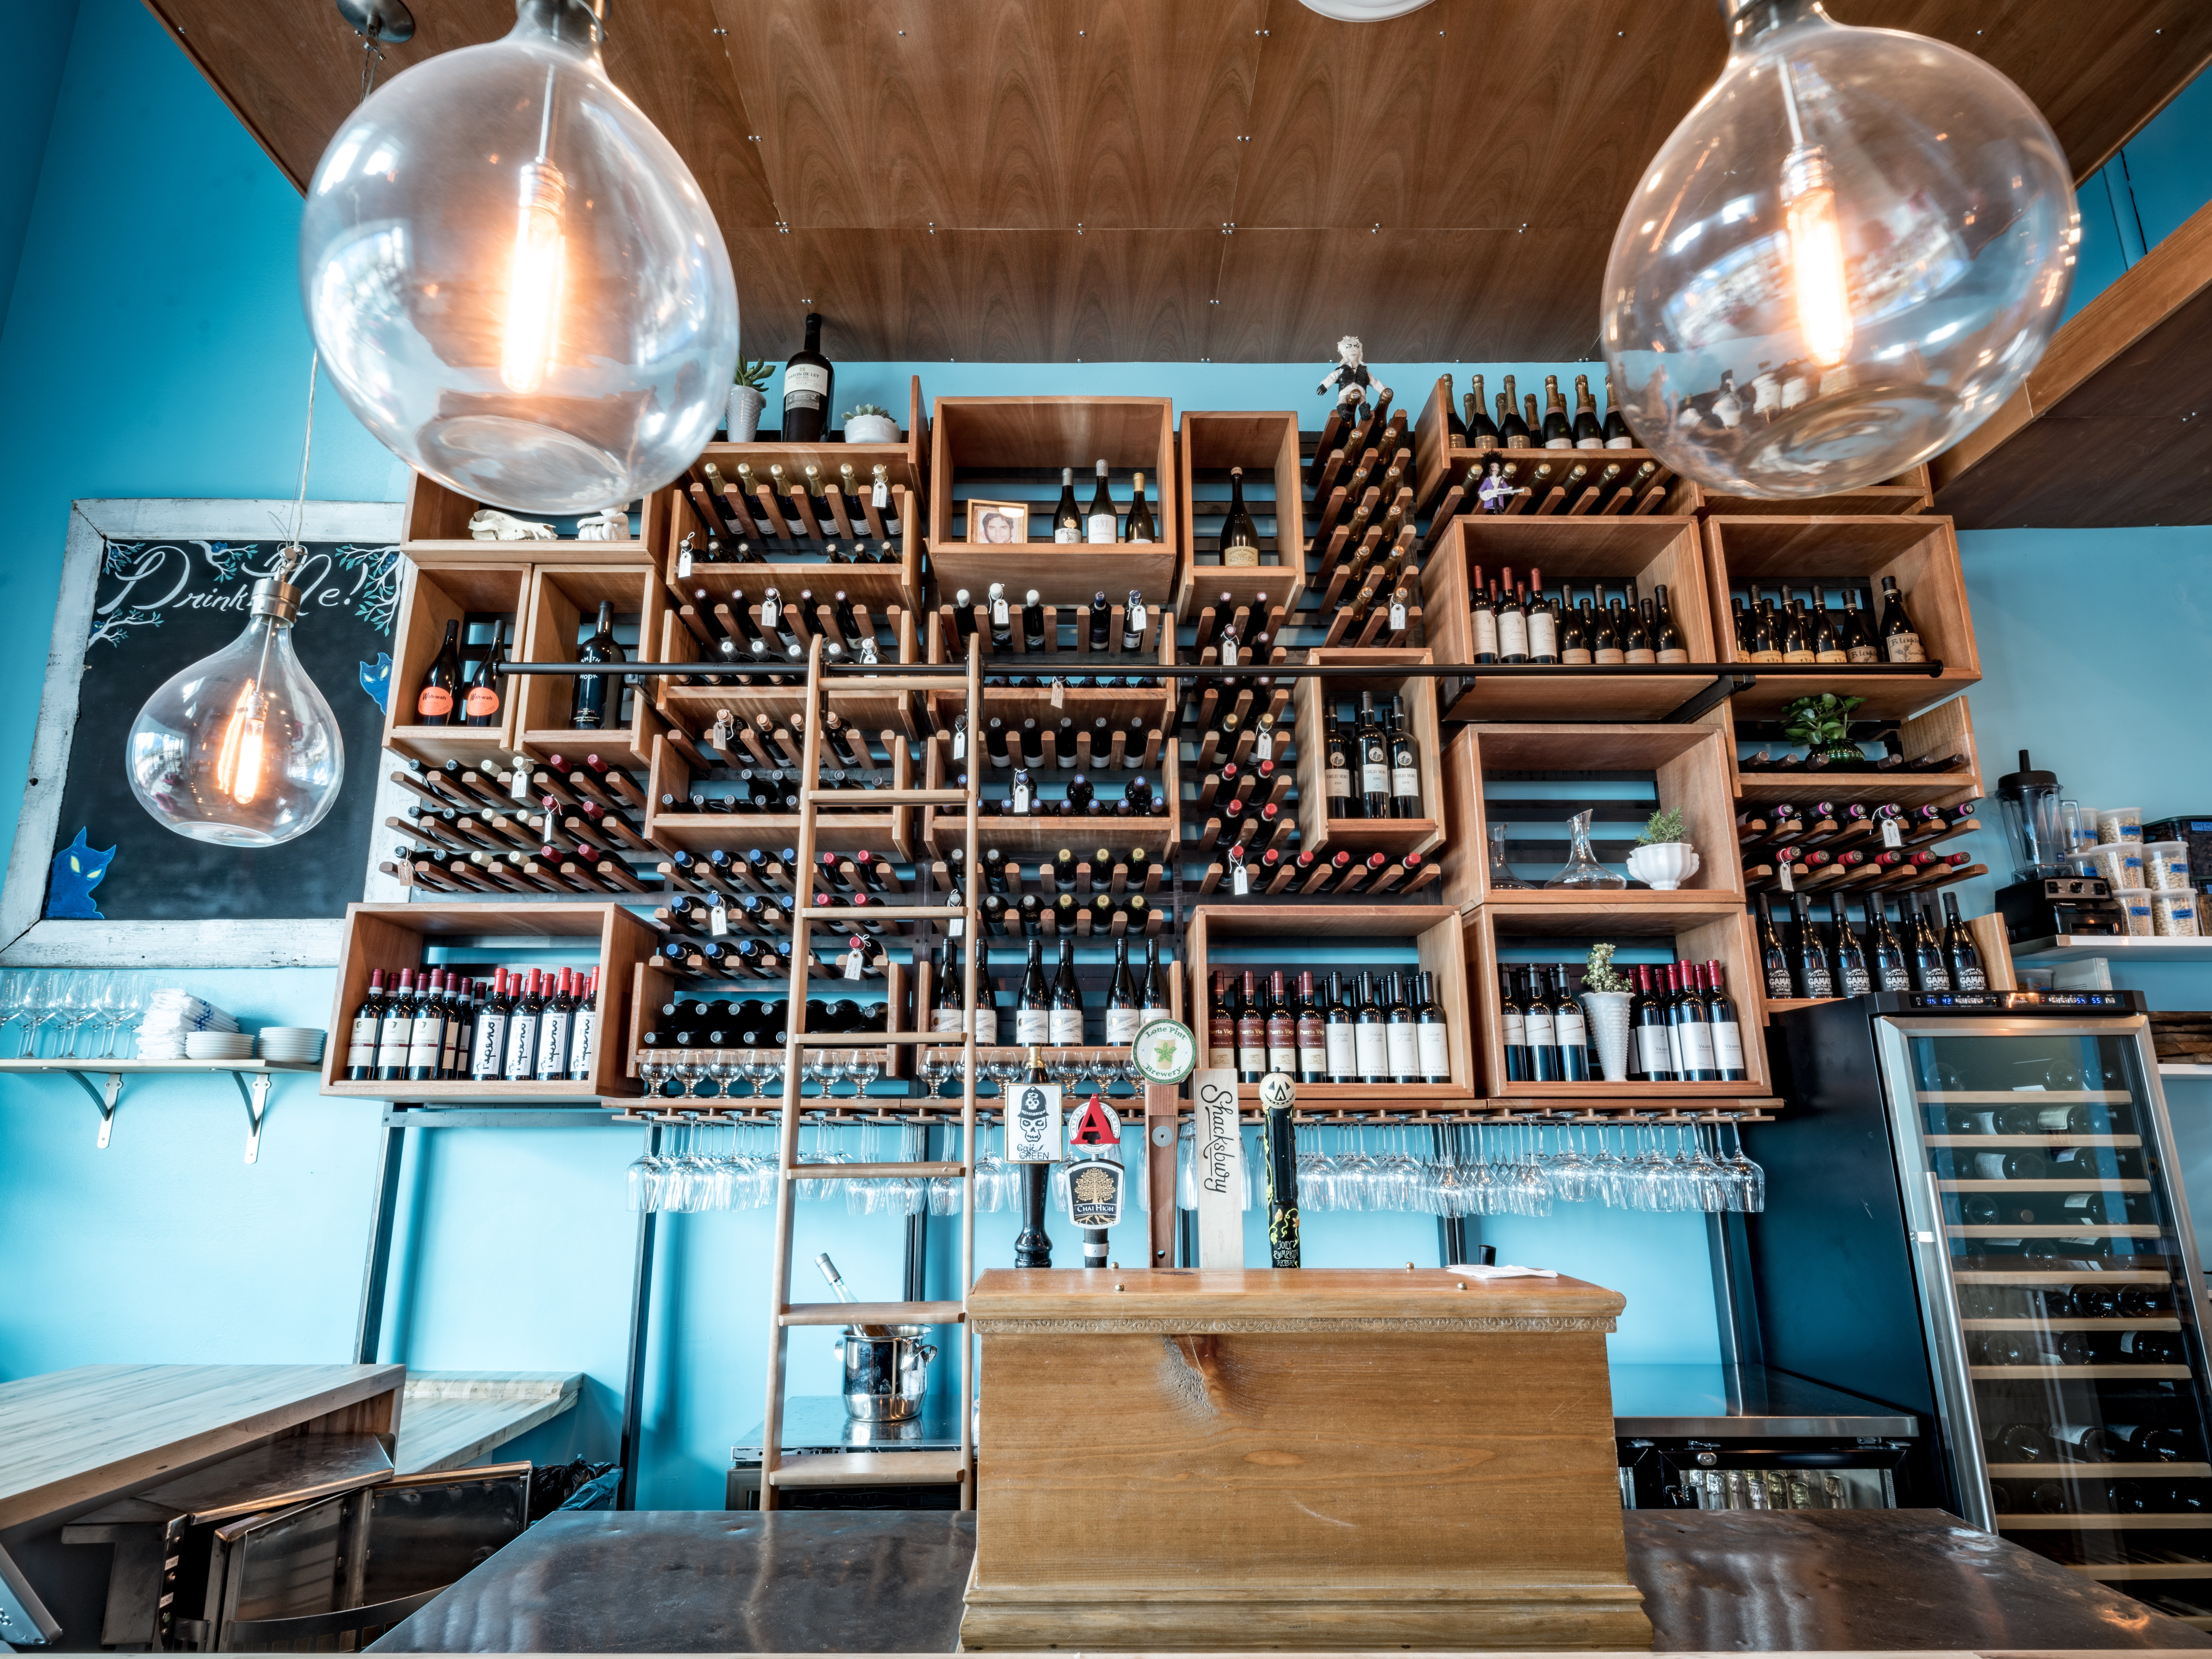 A big shelf of wine bottles with many compartments